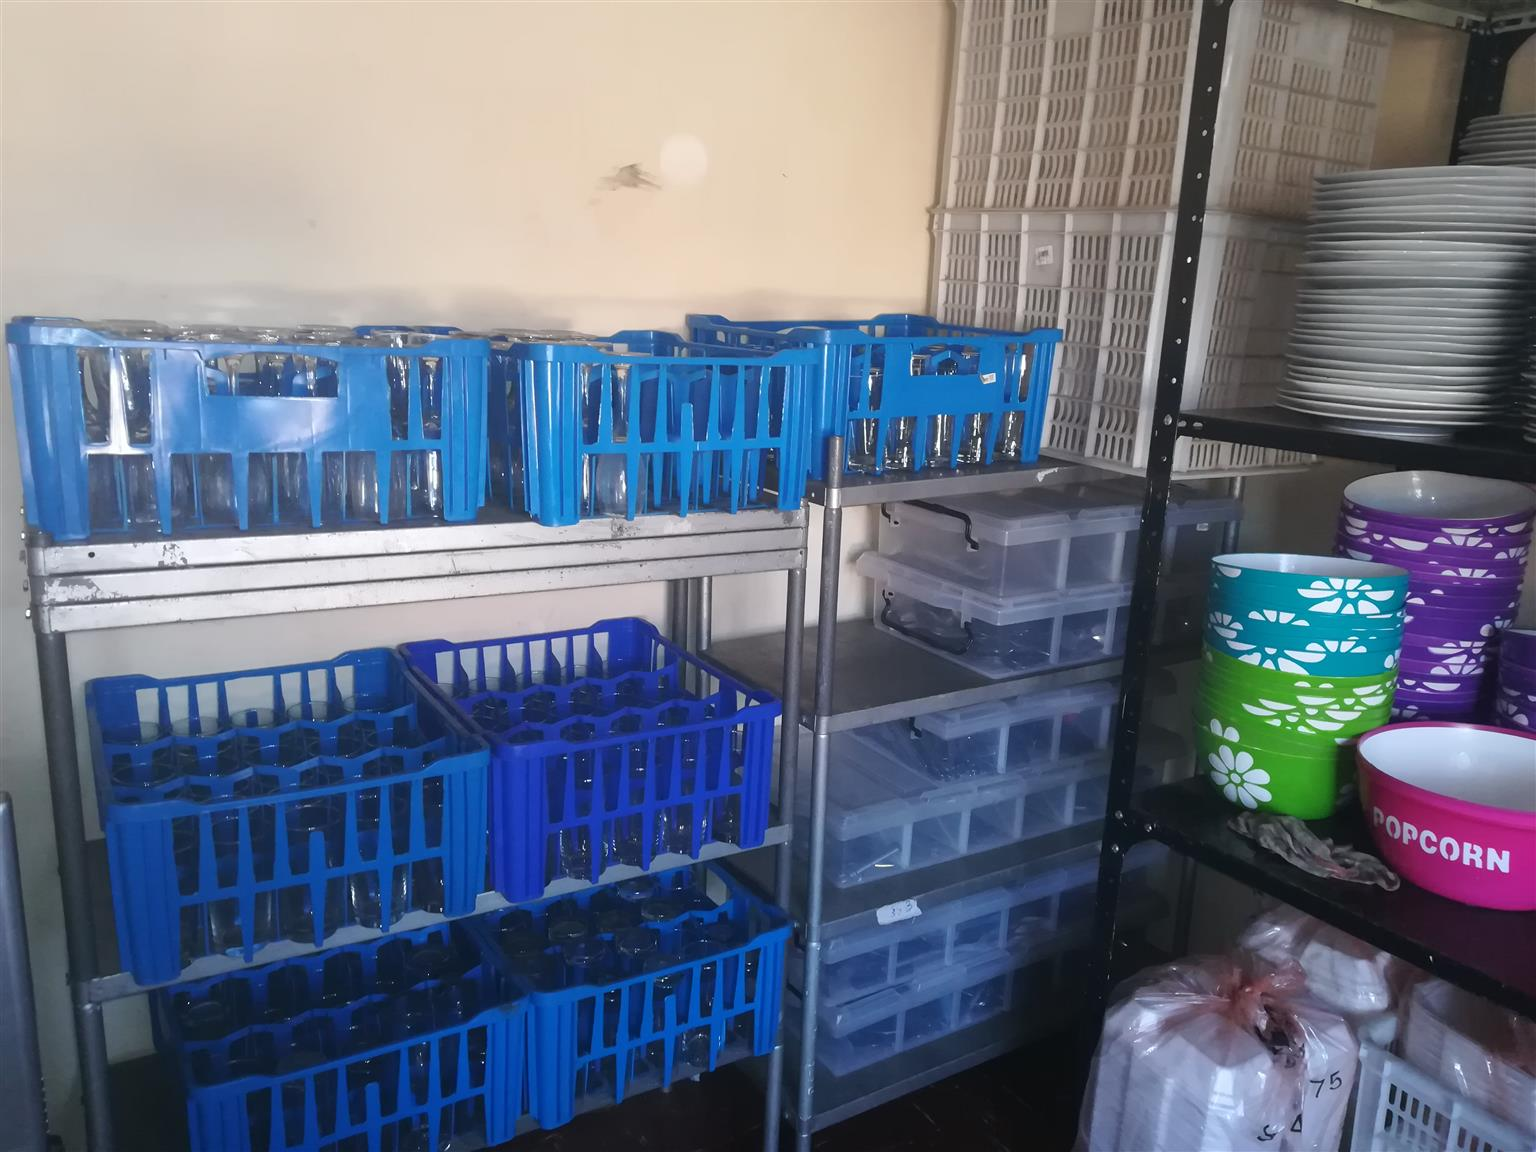 Spitbraai Catering Company and Equipment for Sale